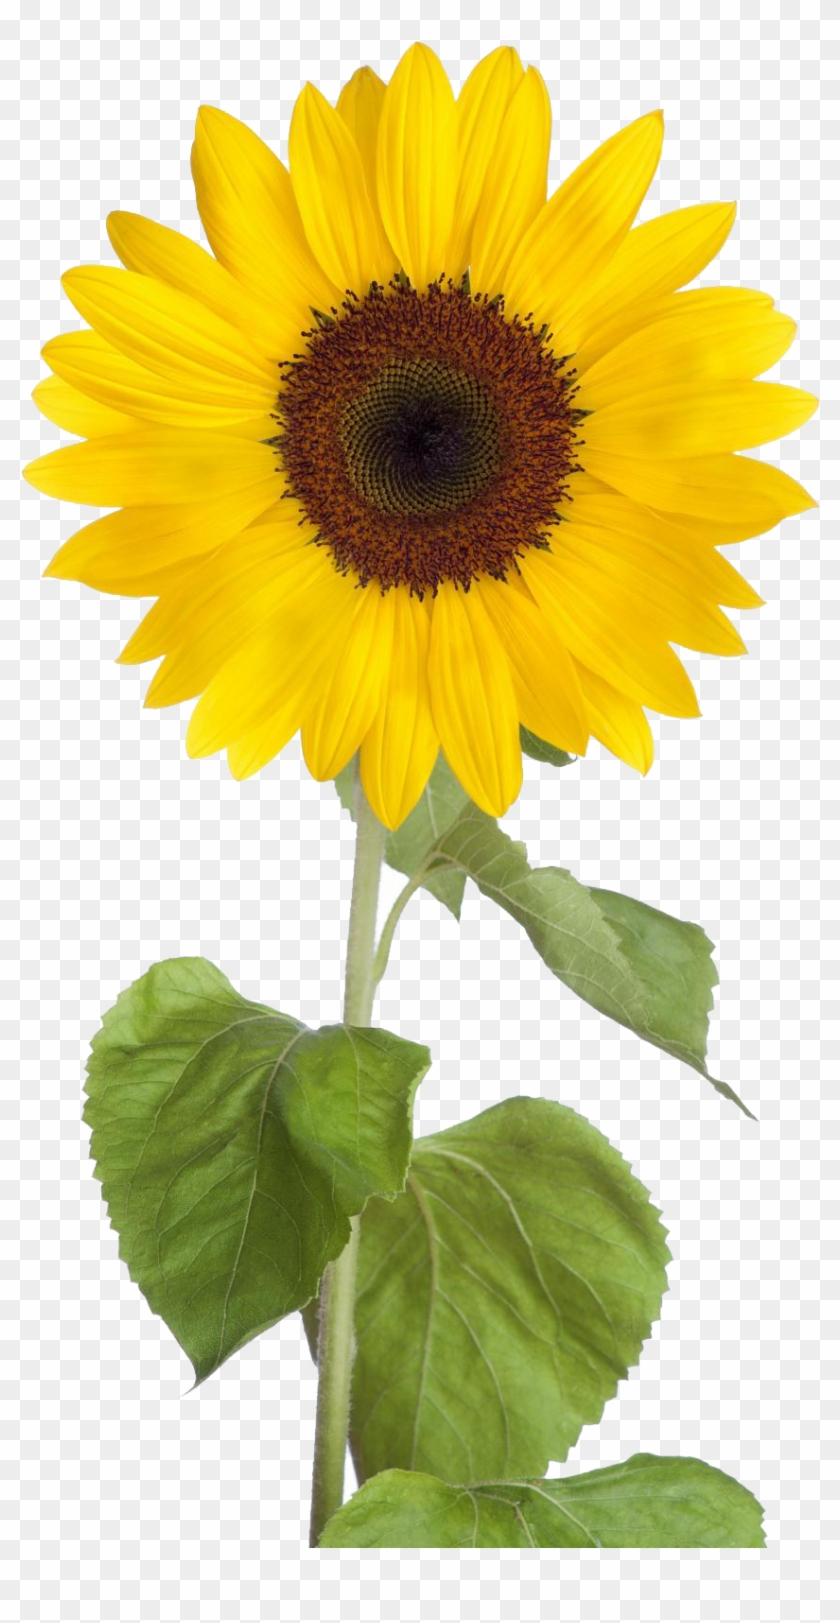 Sunflower clipart transparent clip art royalty free library Sunflower Png Free Download - Transparent Background ... clip art royalty free library